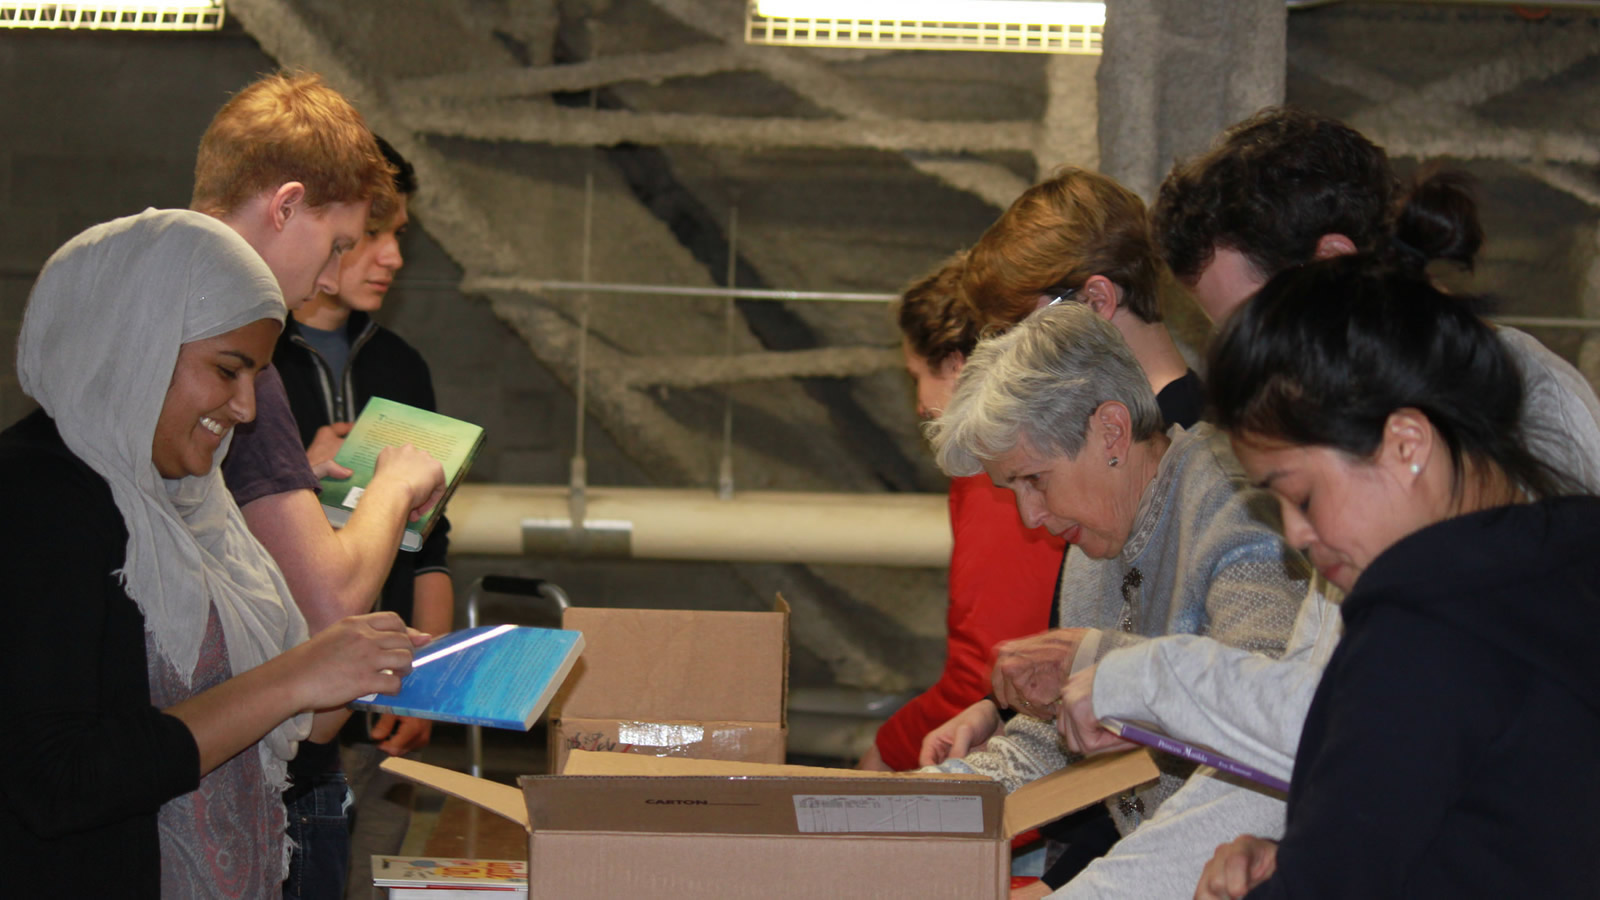 Students and Staff Sort Books Collected Through an Interfaith Book Drive